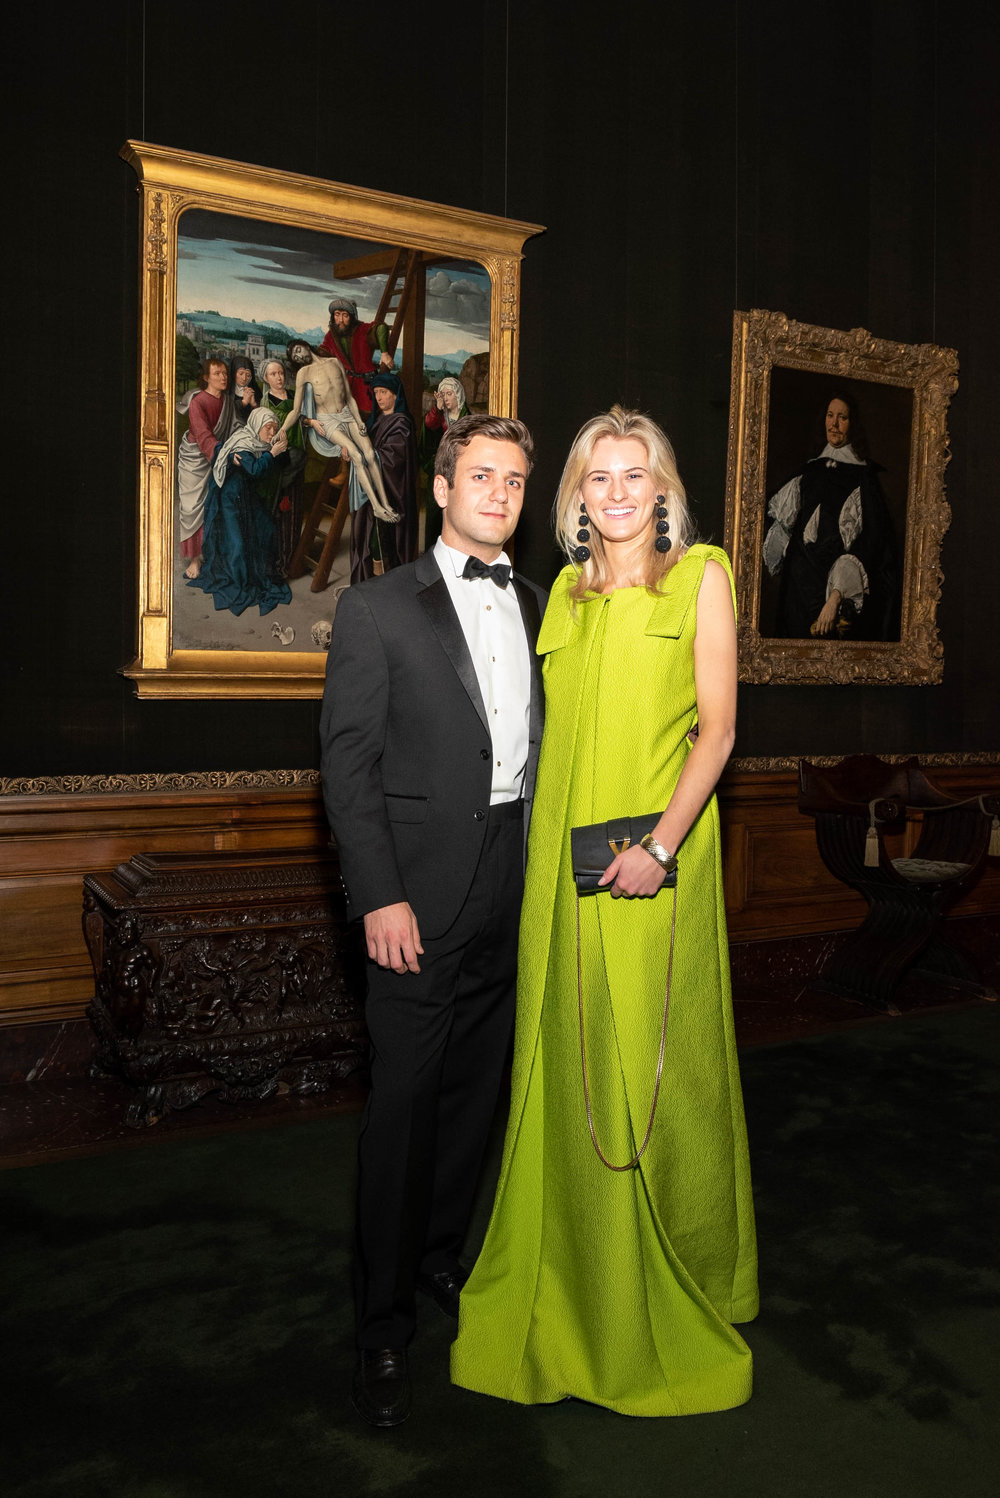 William Leatherman and Blakely Neilson attend The Frick Collection's 20th Annual Young Fellows Ball at 1 East 70th Street on Thursday, March 21st, 2019. Photography, Courtesy of The Frick Collection.